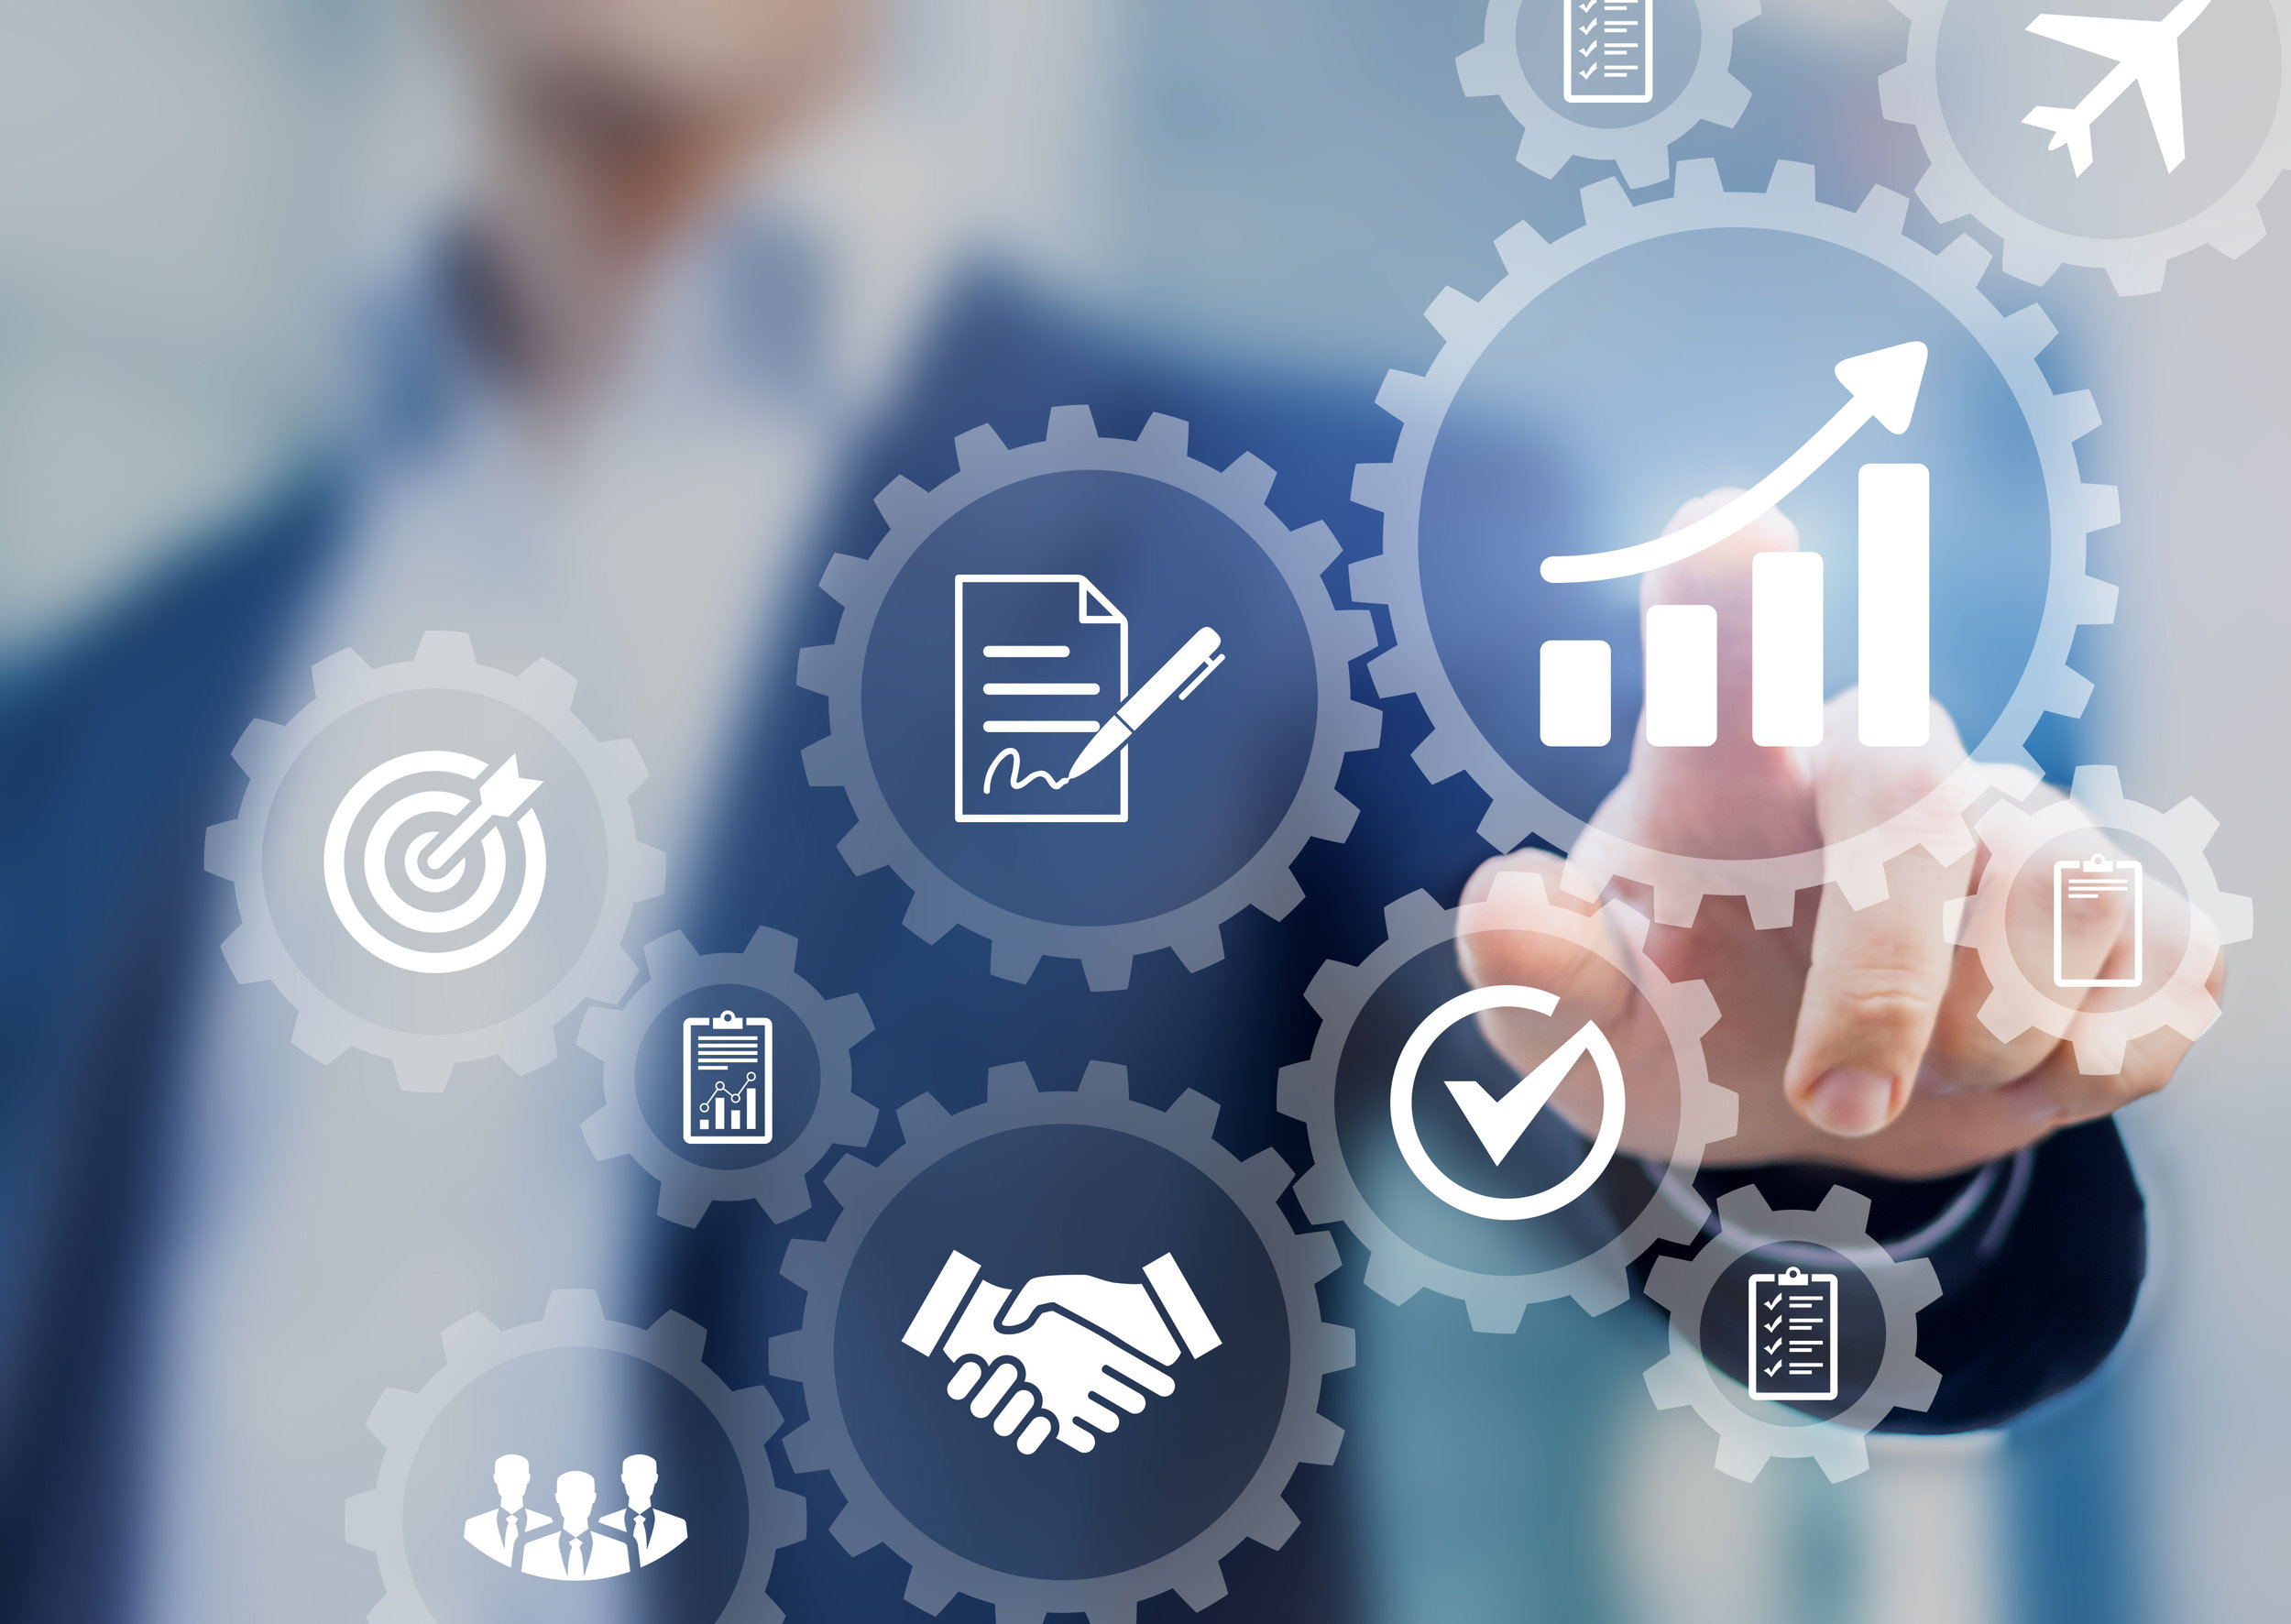 usiness process management and automation concept, automated workflow, gears, businessman AdobeStock_175771326.jpeg